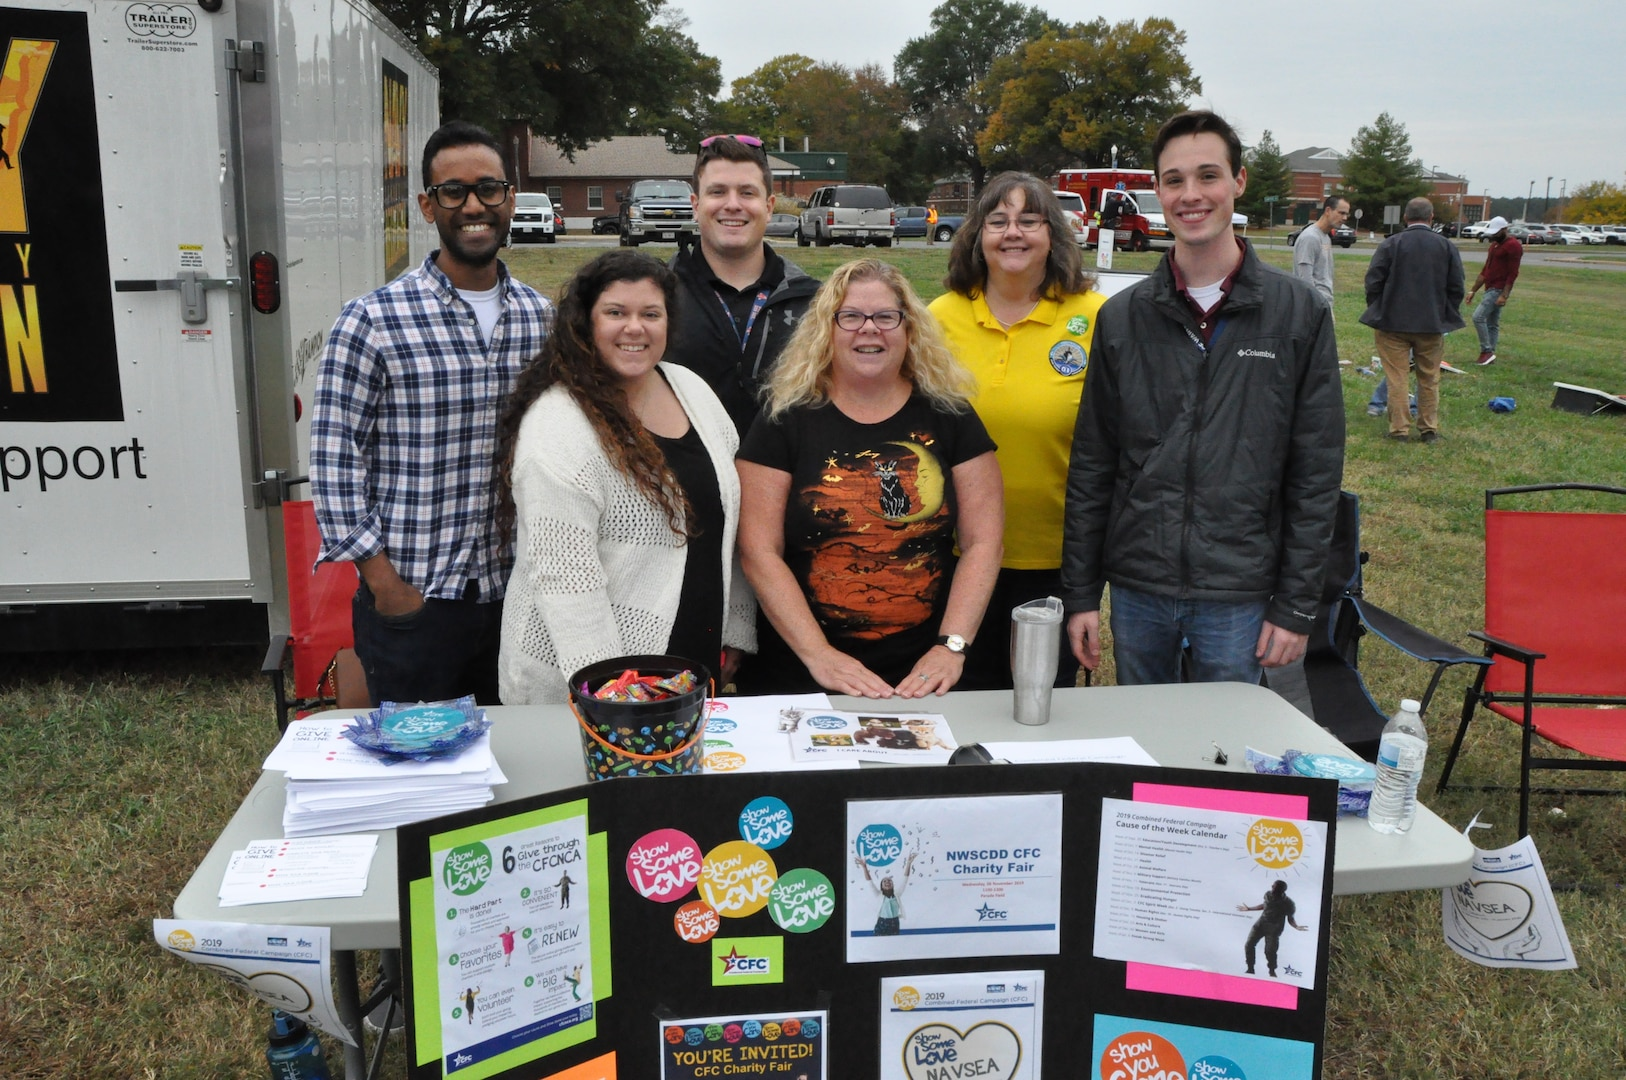 IMAGE: DAHLGREN, Va. (Oct. 30, 2019) – The Naval Surface Warfare Center Dahlgren Division (NSWCDD) Combined Federal Campaign team is pictured at the command picnic spreading the word about new features of the CFC campaign. Each week until the last day to give – Jan. 12, 2020 – highlights causes including environmental protection, eradicating hunger, human rights, and arts and culture. Back row left to right are Vijay Ahluwalia, Bryce Betz, and Joyce Clark. Front row left to right are Rebecca Storke, Katy Evans, and Kyle Duca. (U.S. Navy photo/Released)